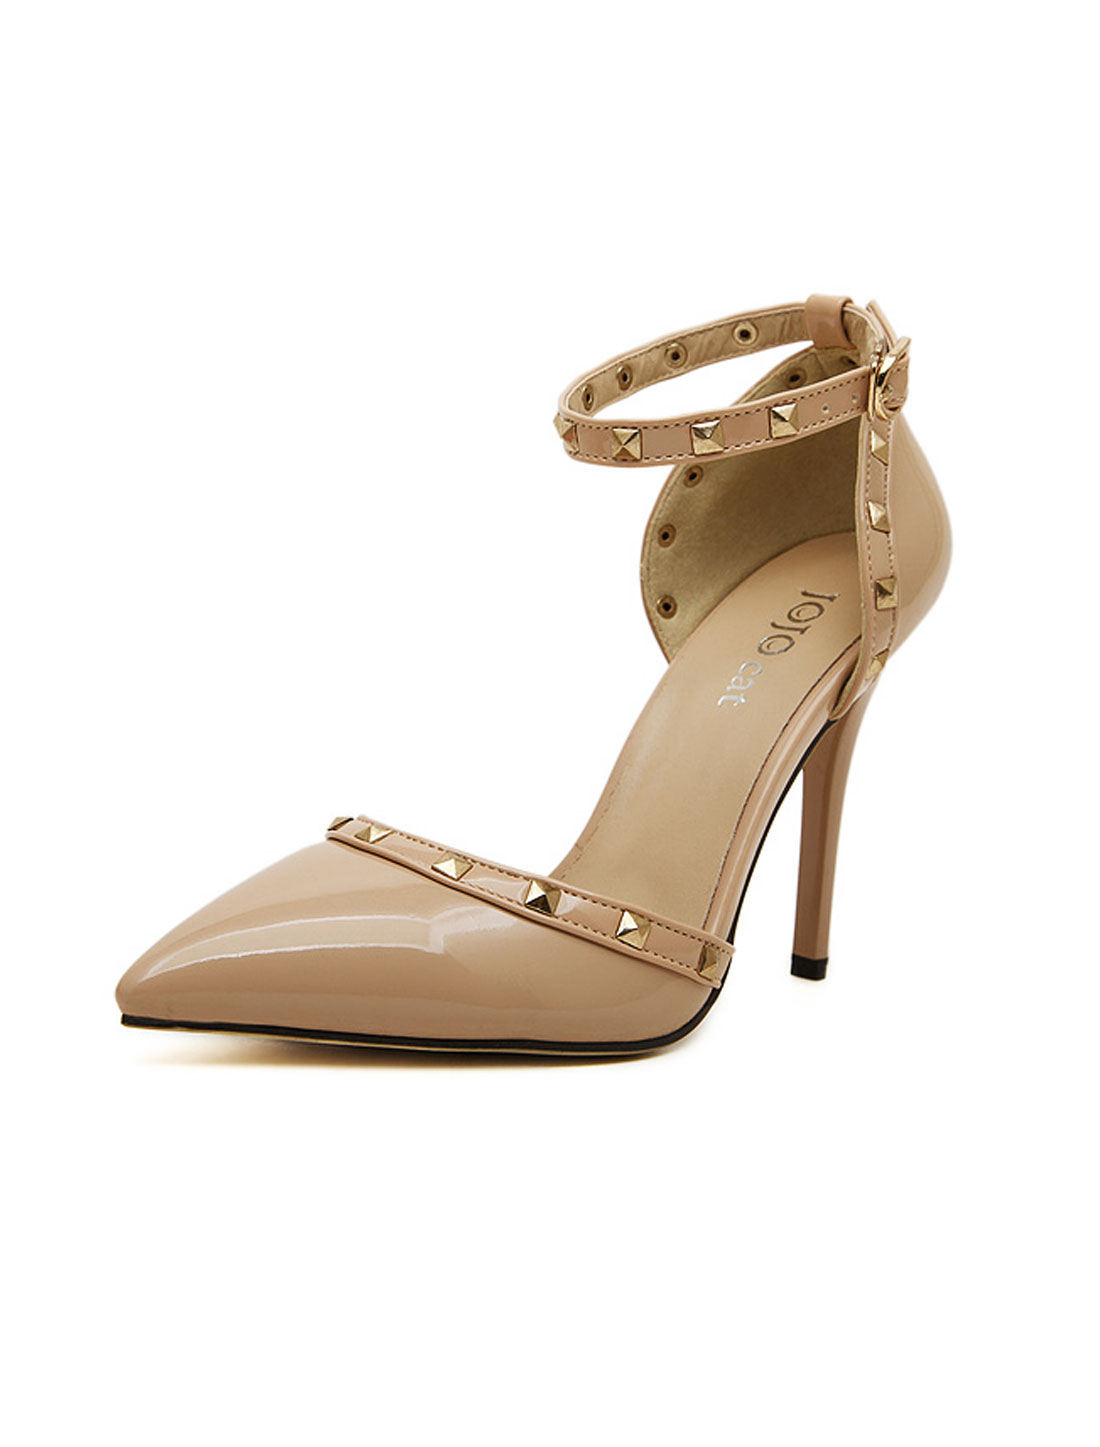 Women Rivet Embellished Pointed Toe Ankle Strap Pumps Apricot US 8